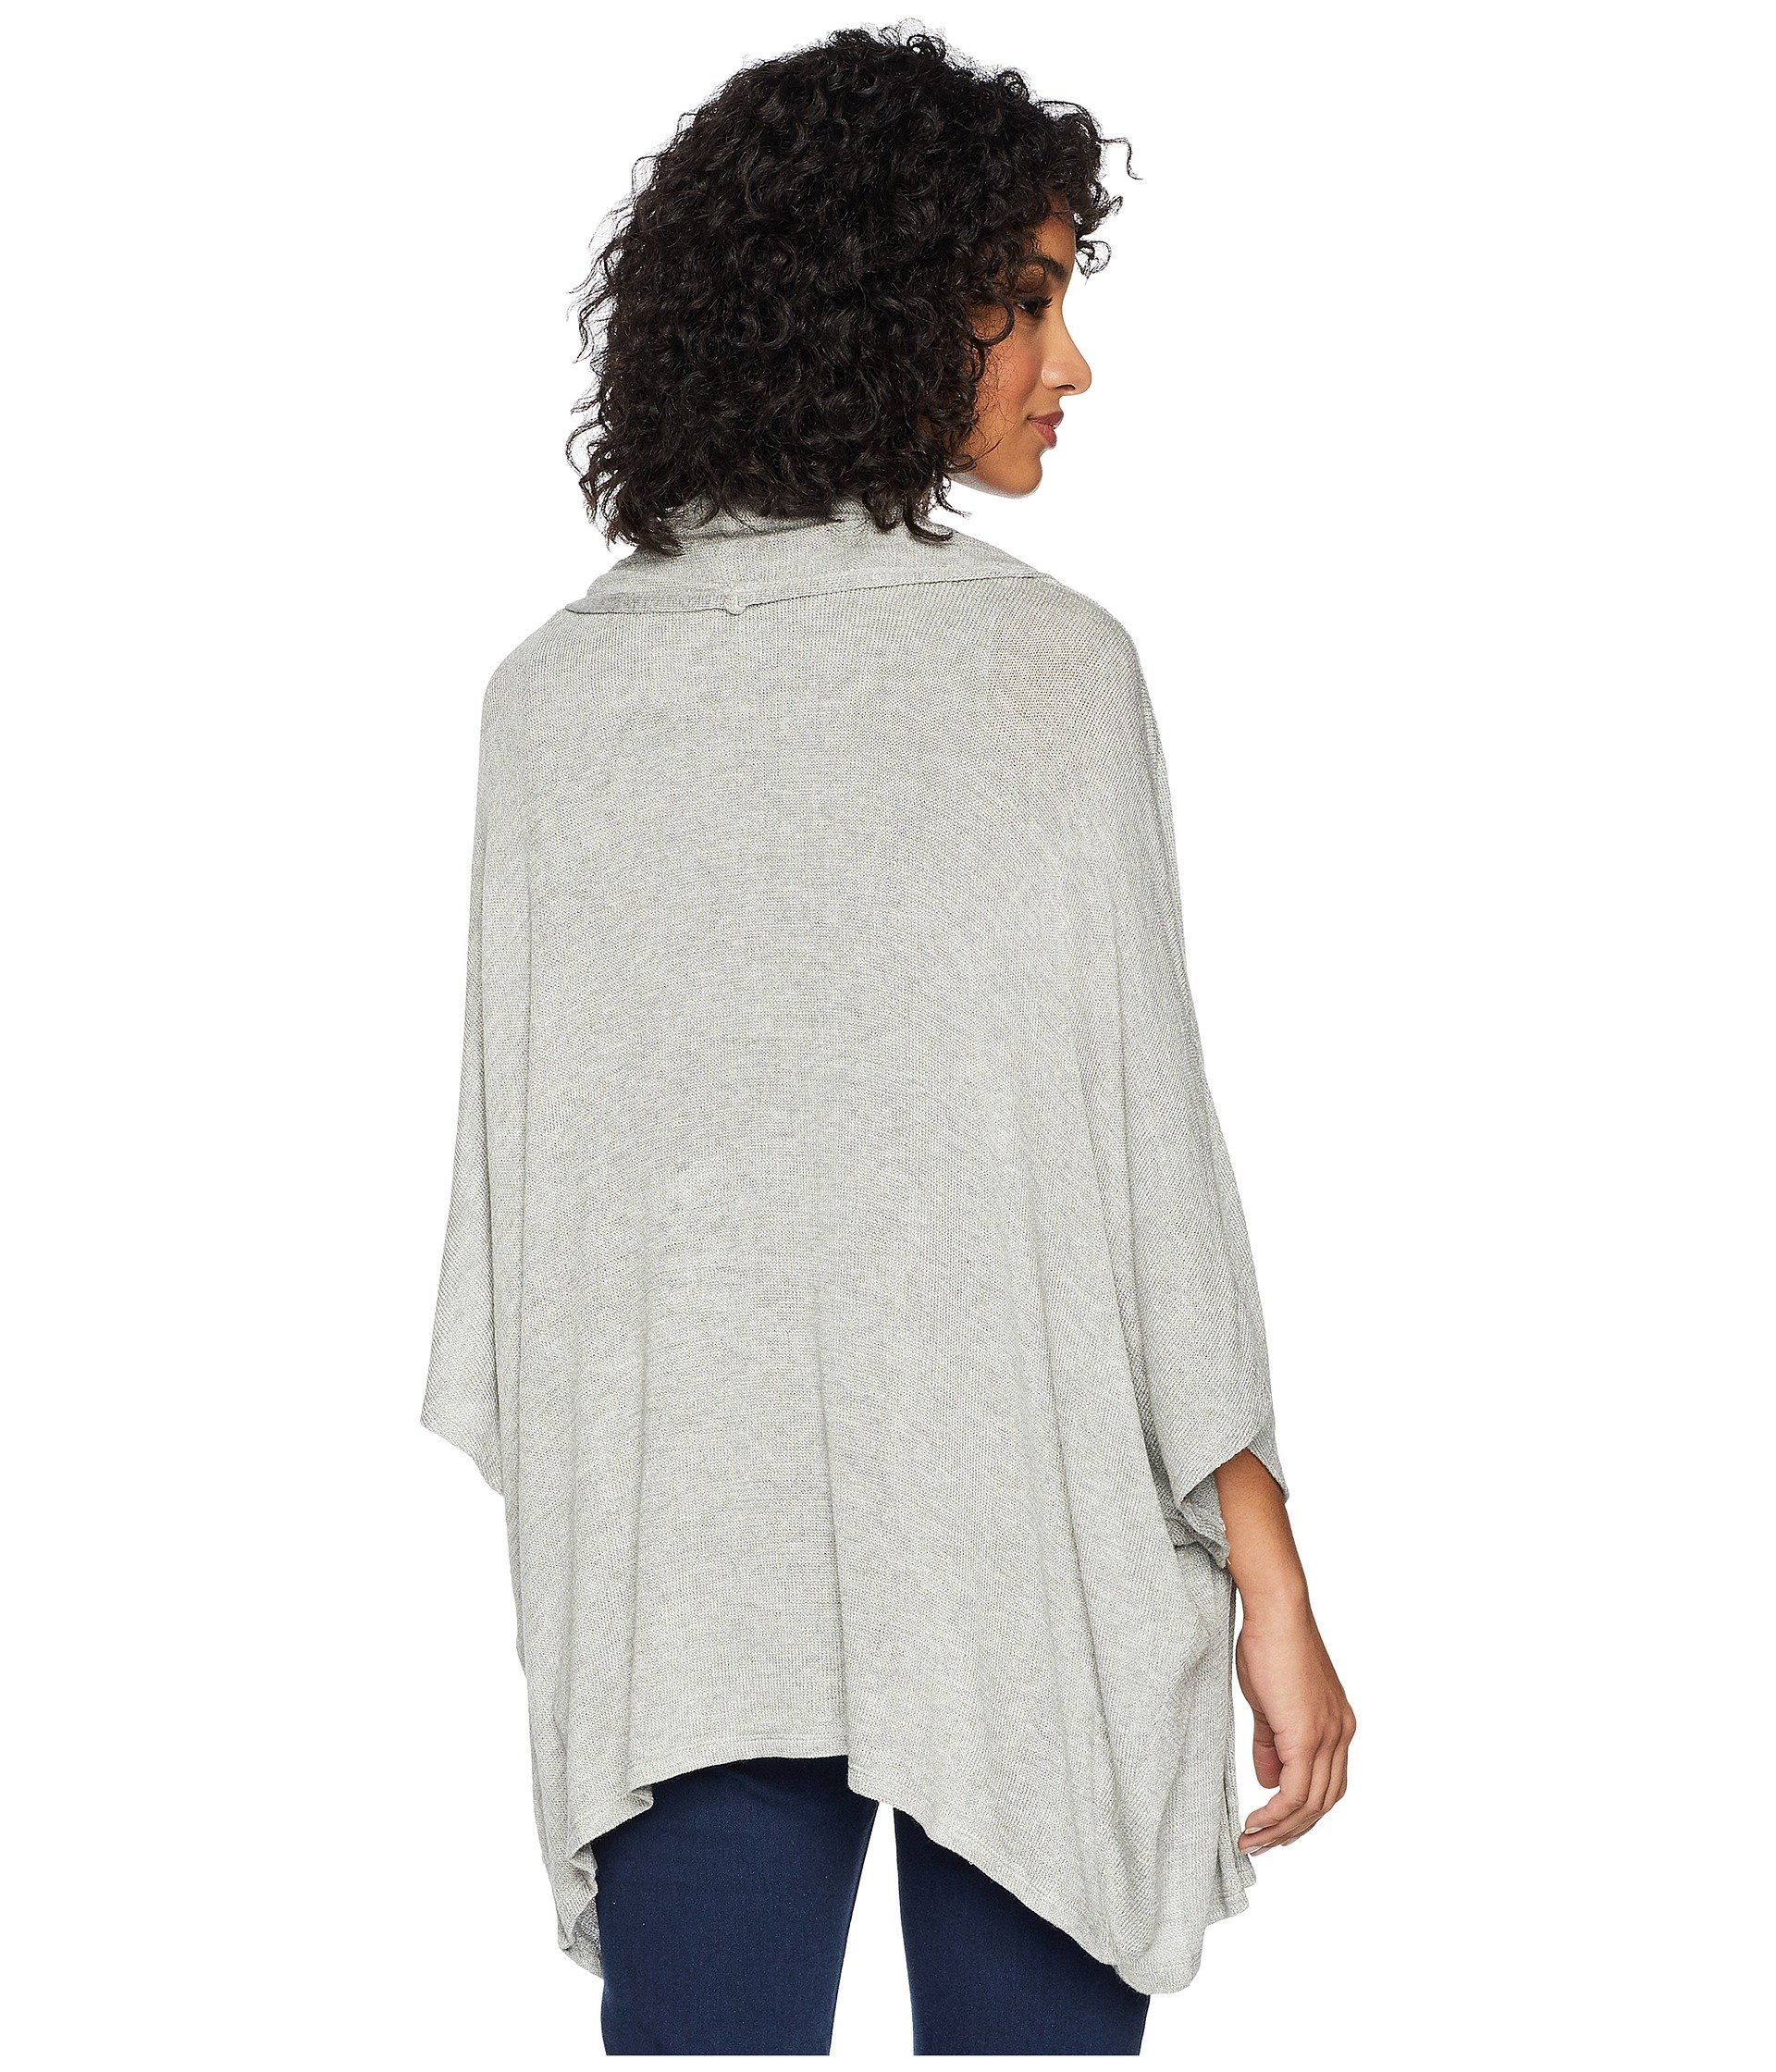 Bb Jase Knit Dolman Jacket Light Dakota Grey Heather Sleeve wSTwrq7xH